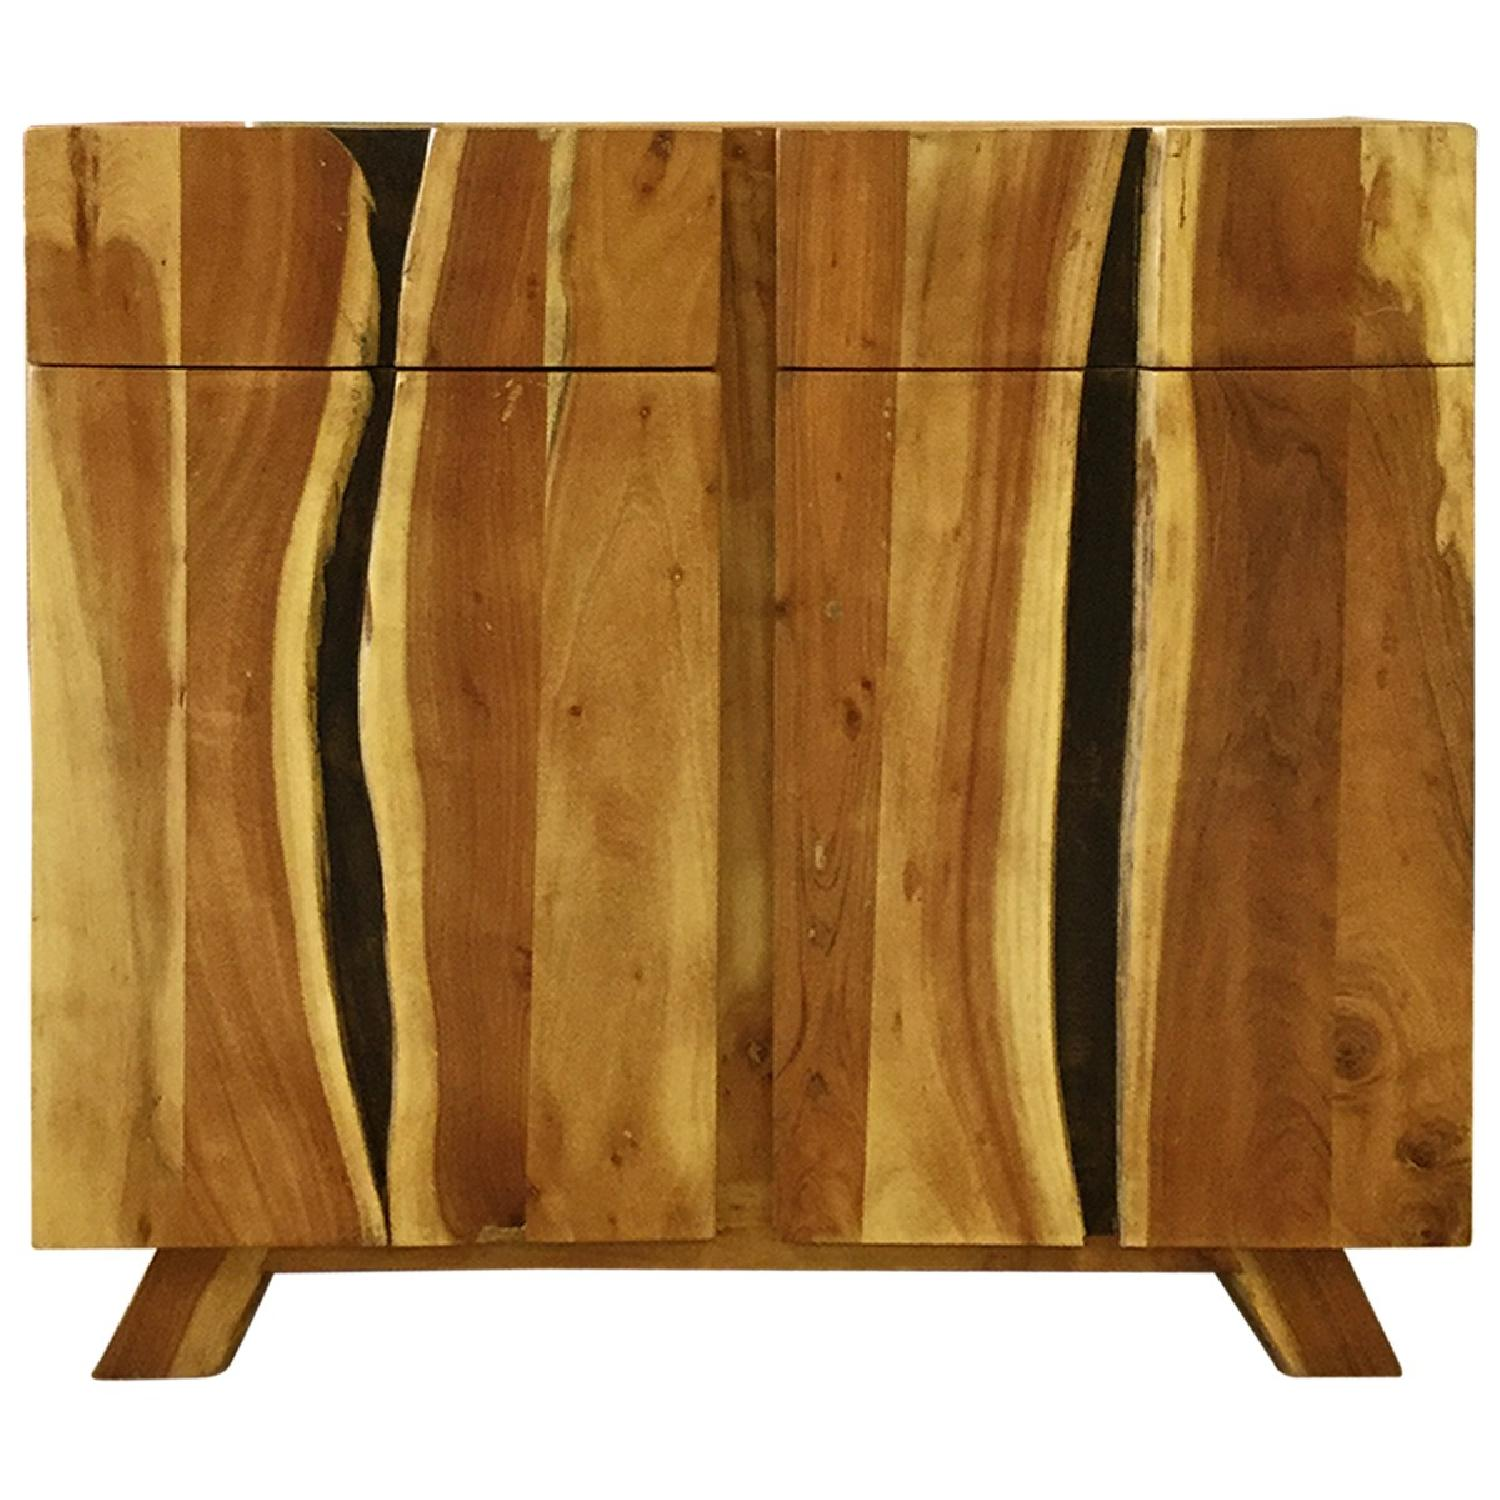 Wooden 2 Drawers Sideboard - image-0